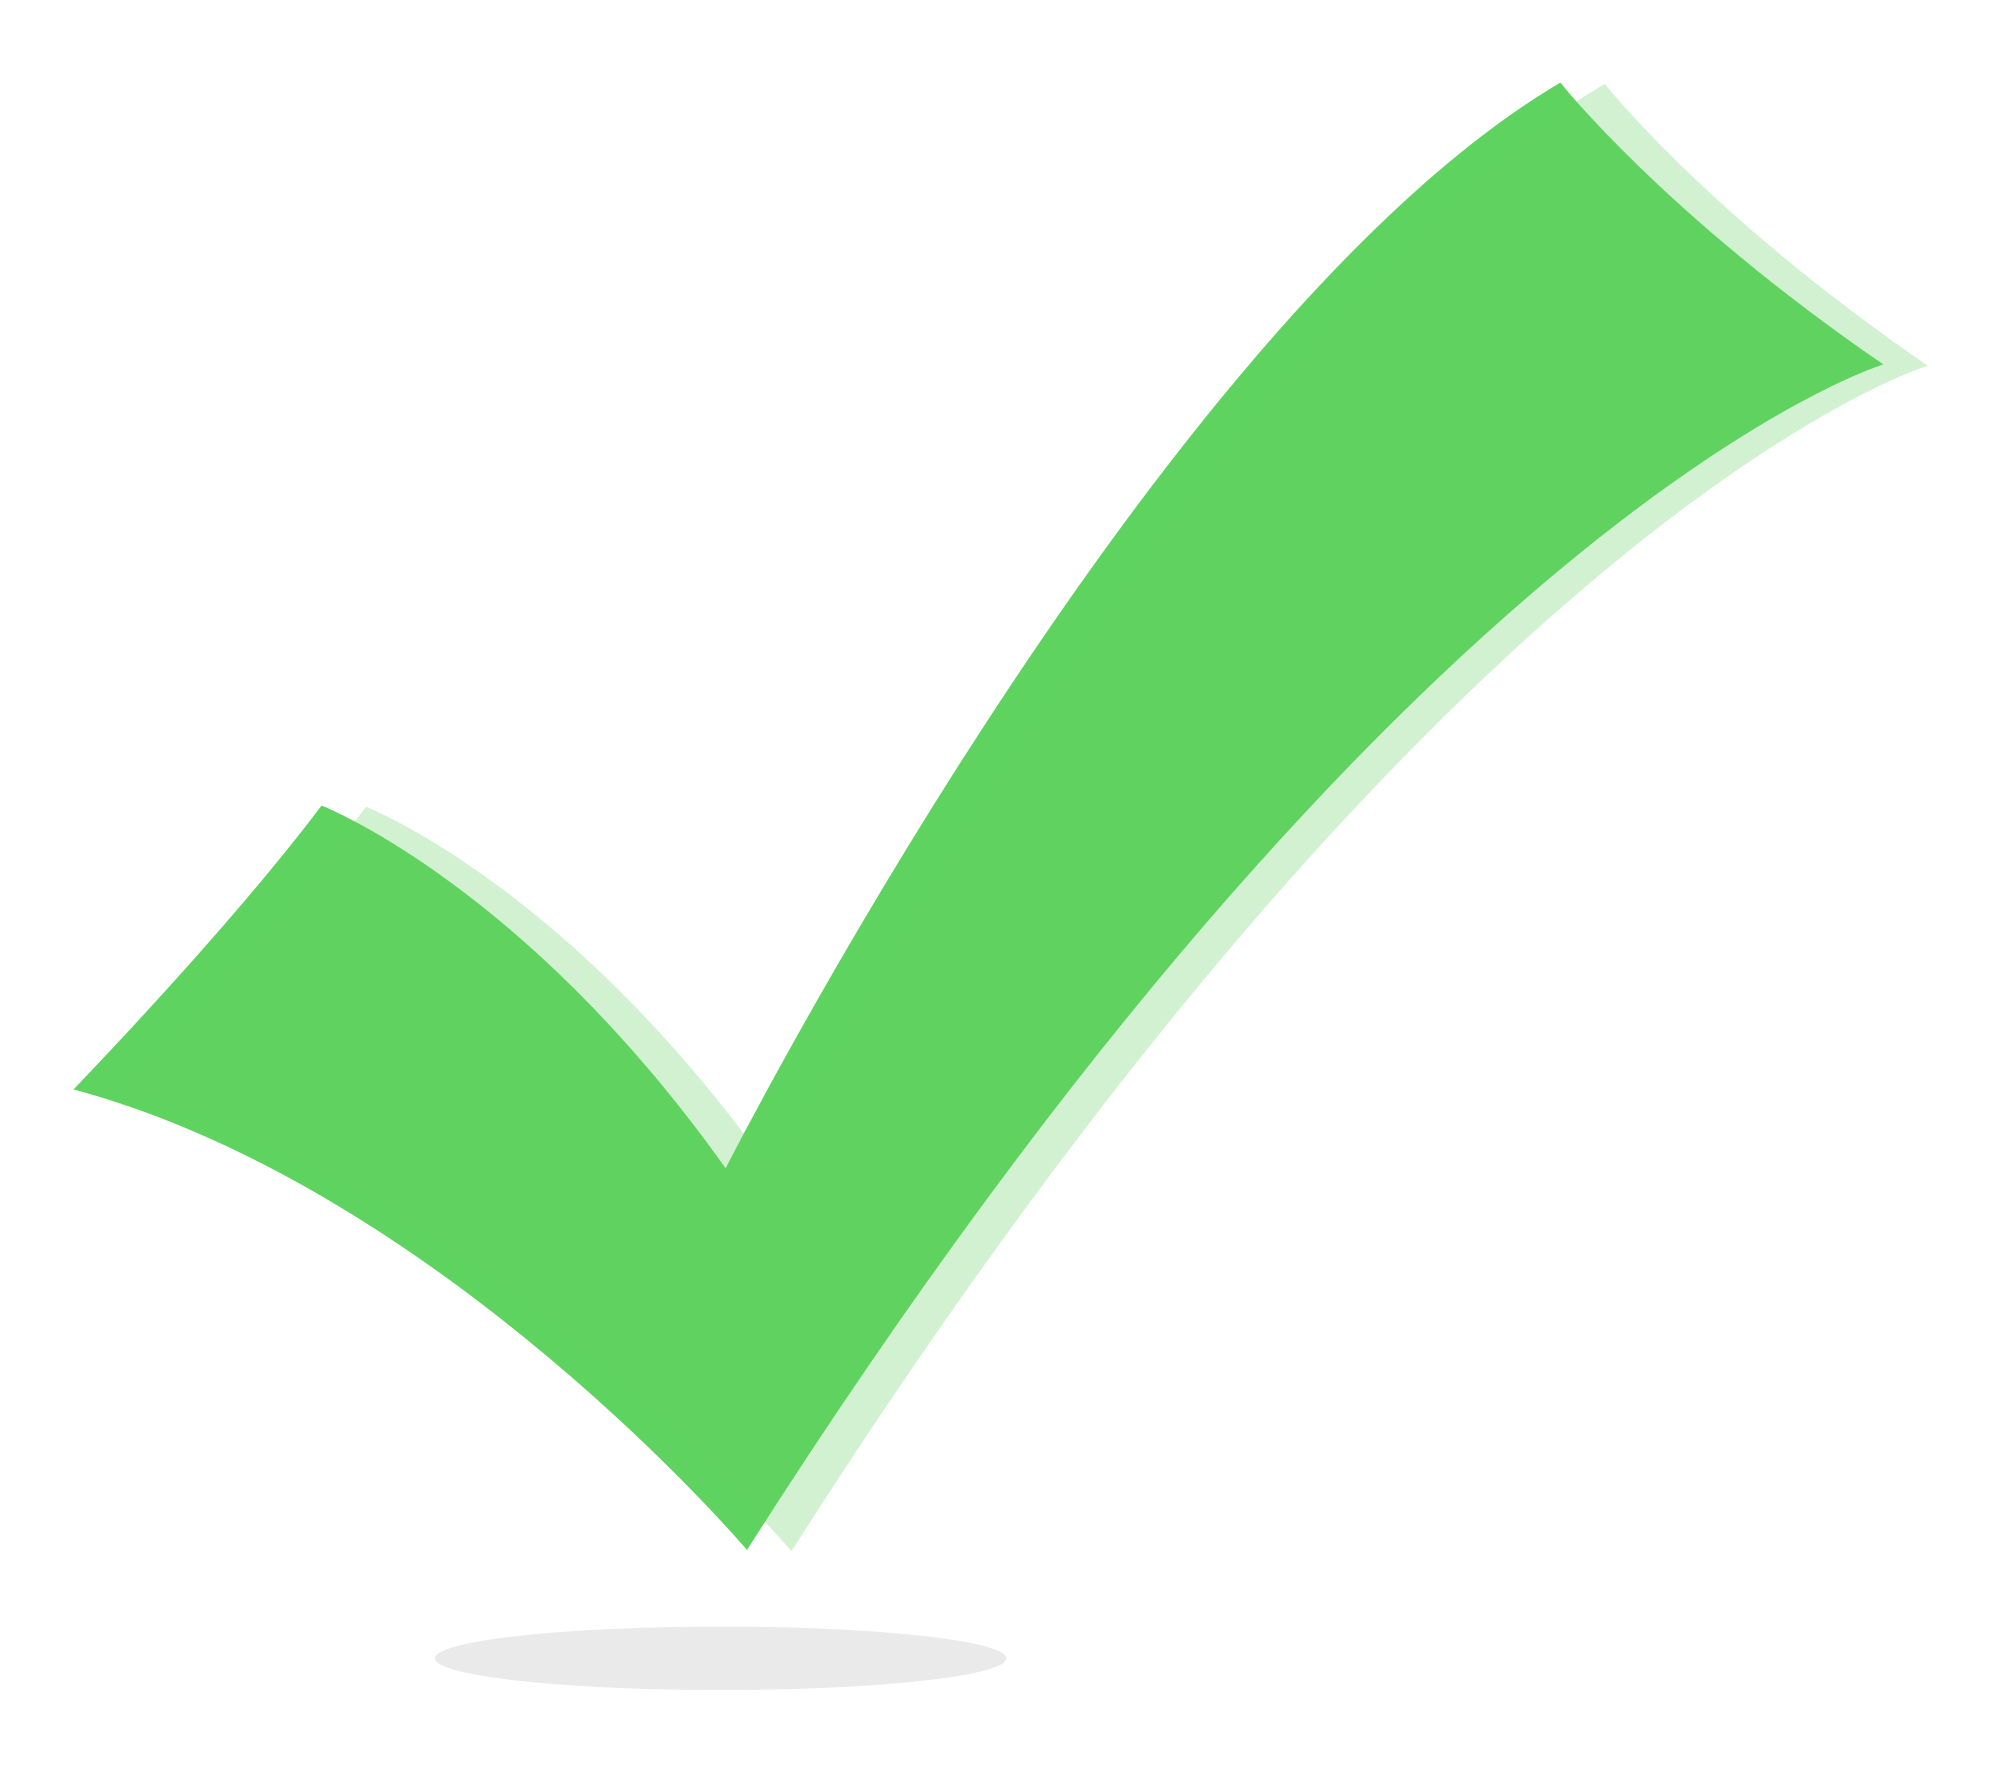 Svg checkmark chack. File wikimedia commons open